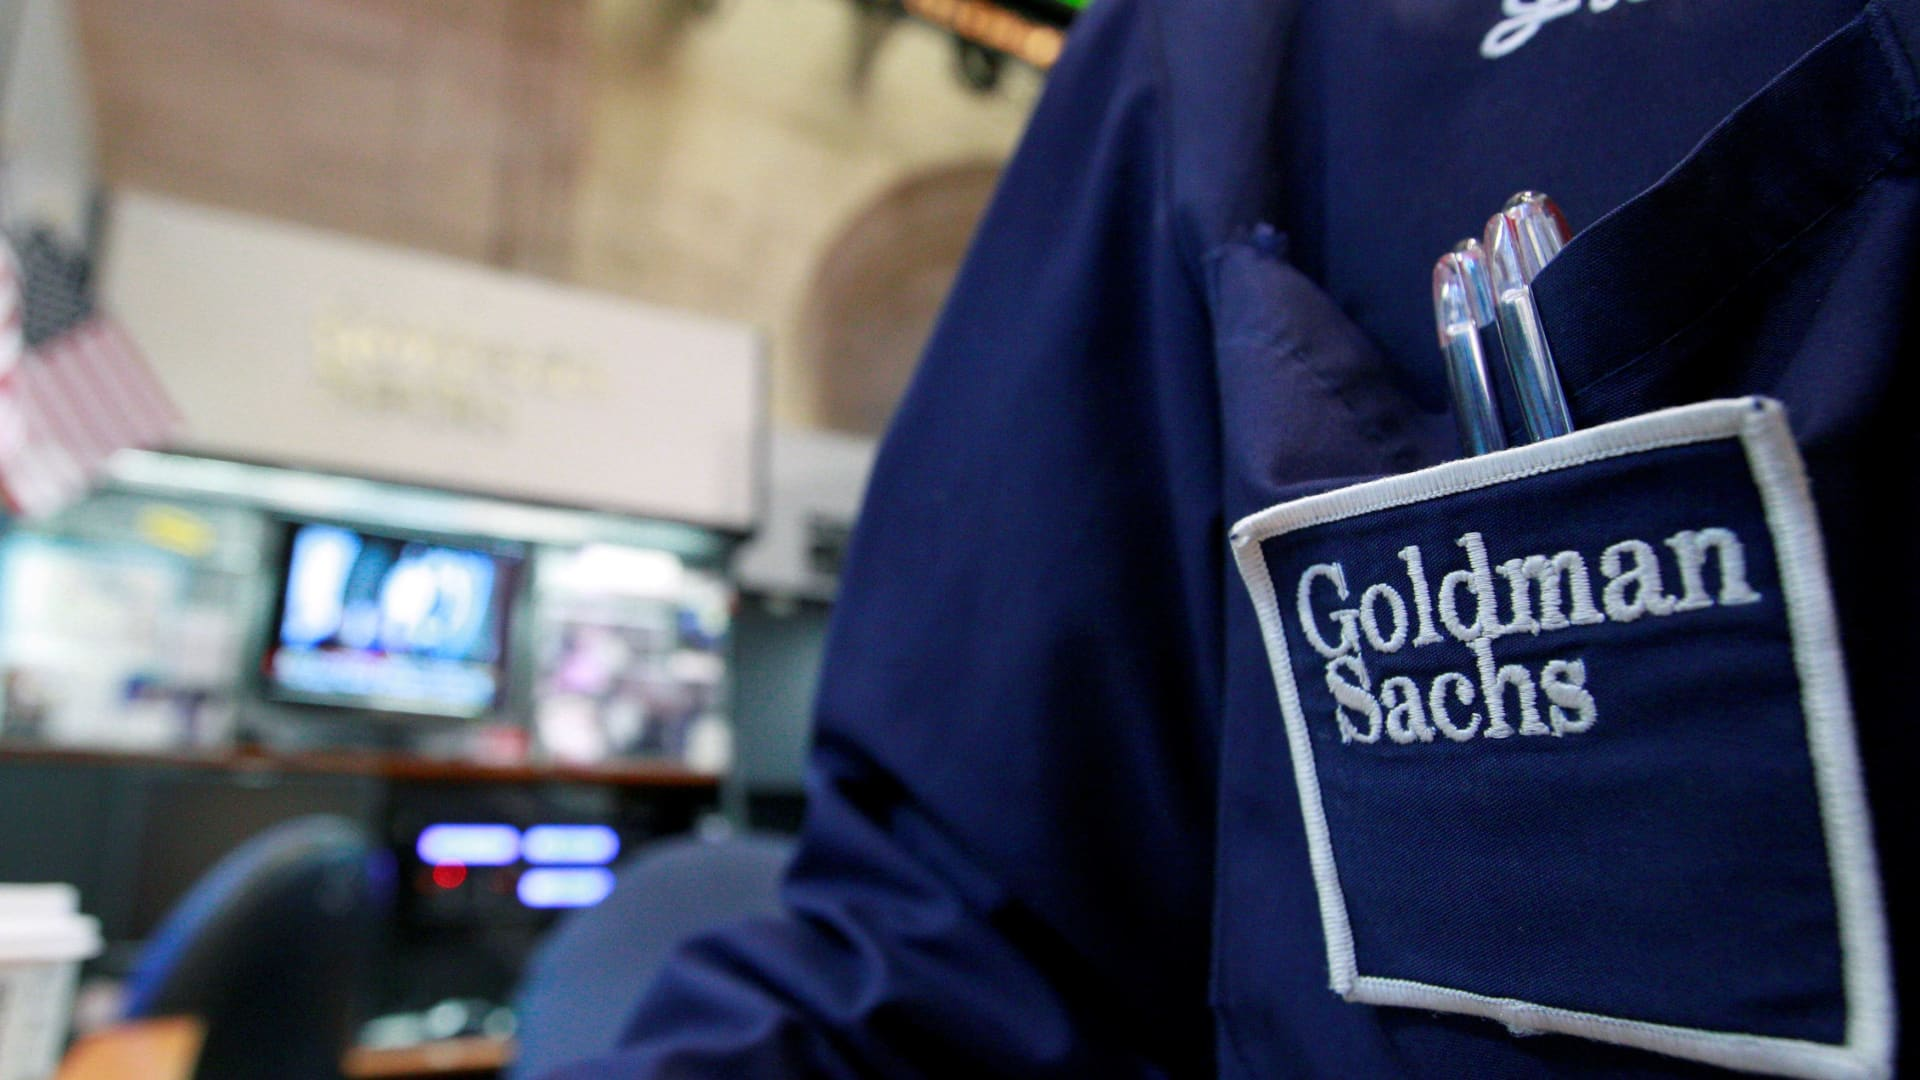 A trader works at the Goldman Sachs stall on the floor of the New York Stock Exchange.